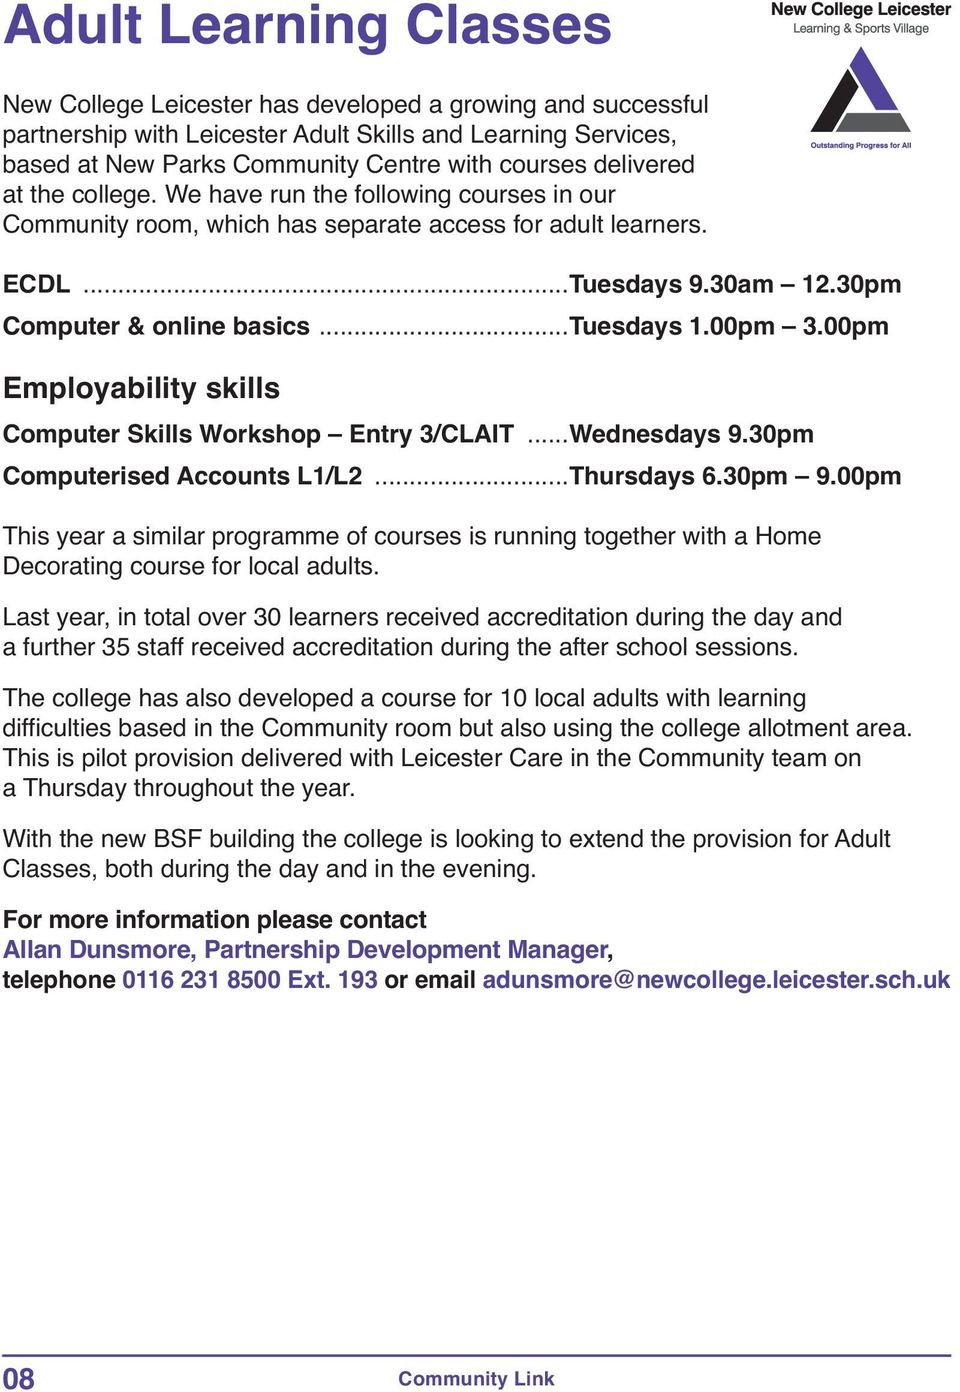 00pm 3.00pm Employability skills Computer Skills Workshop Entry 3/CLAIT...Wednesdays 9.30pm Computerised Accounts L1/L2...Thursdays 6.30pm 9.